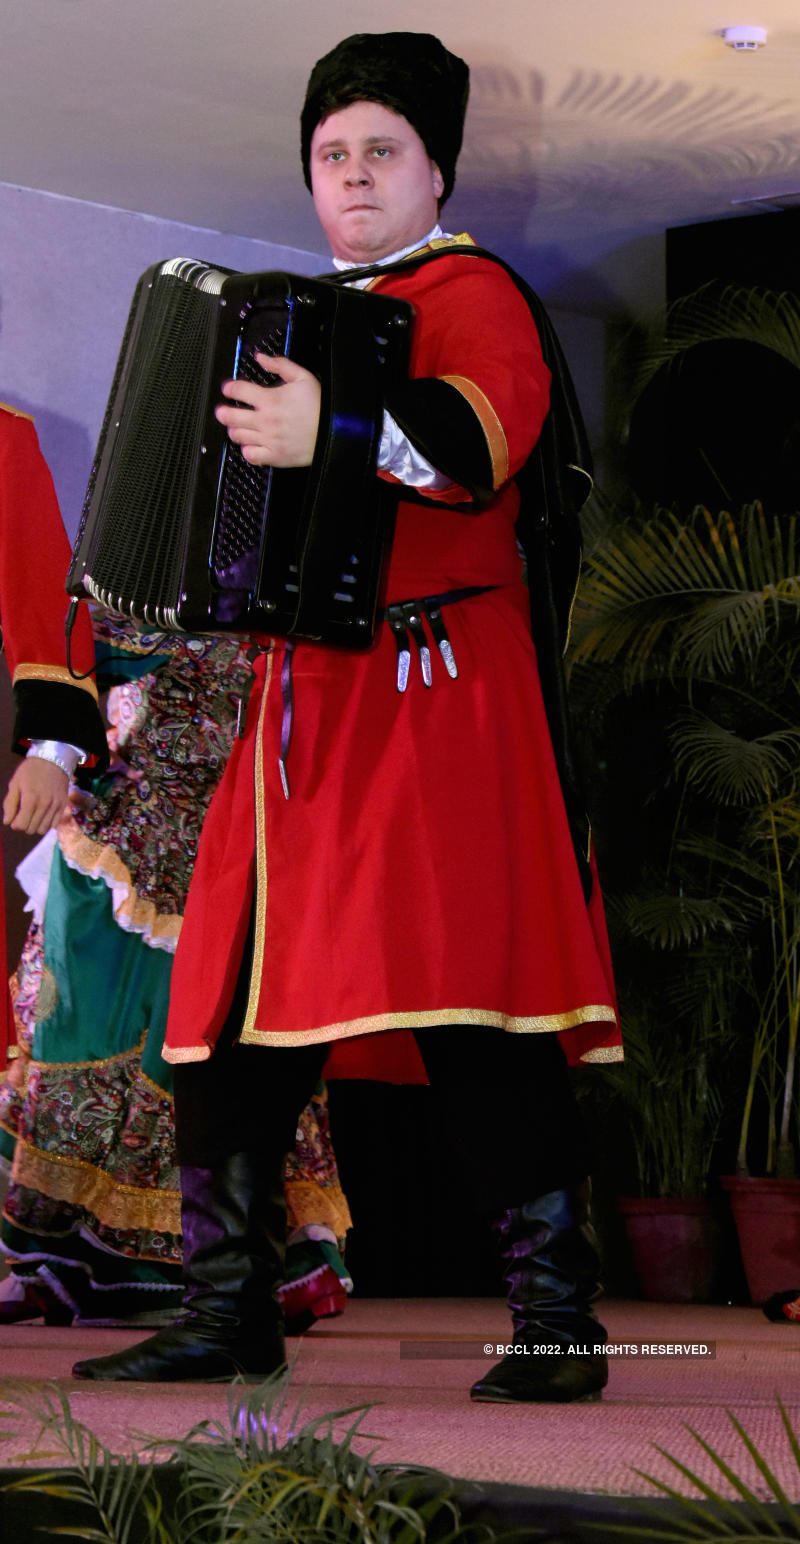 The Consulate General of the Russian Federation hosts a colourful folk show